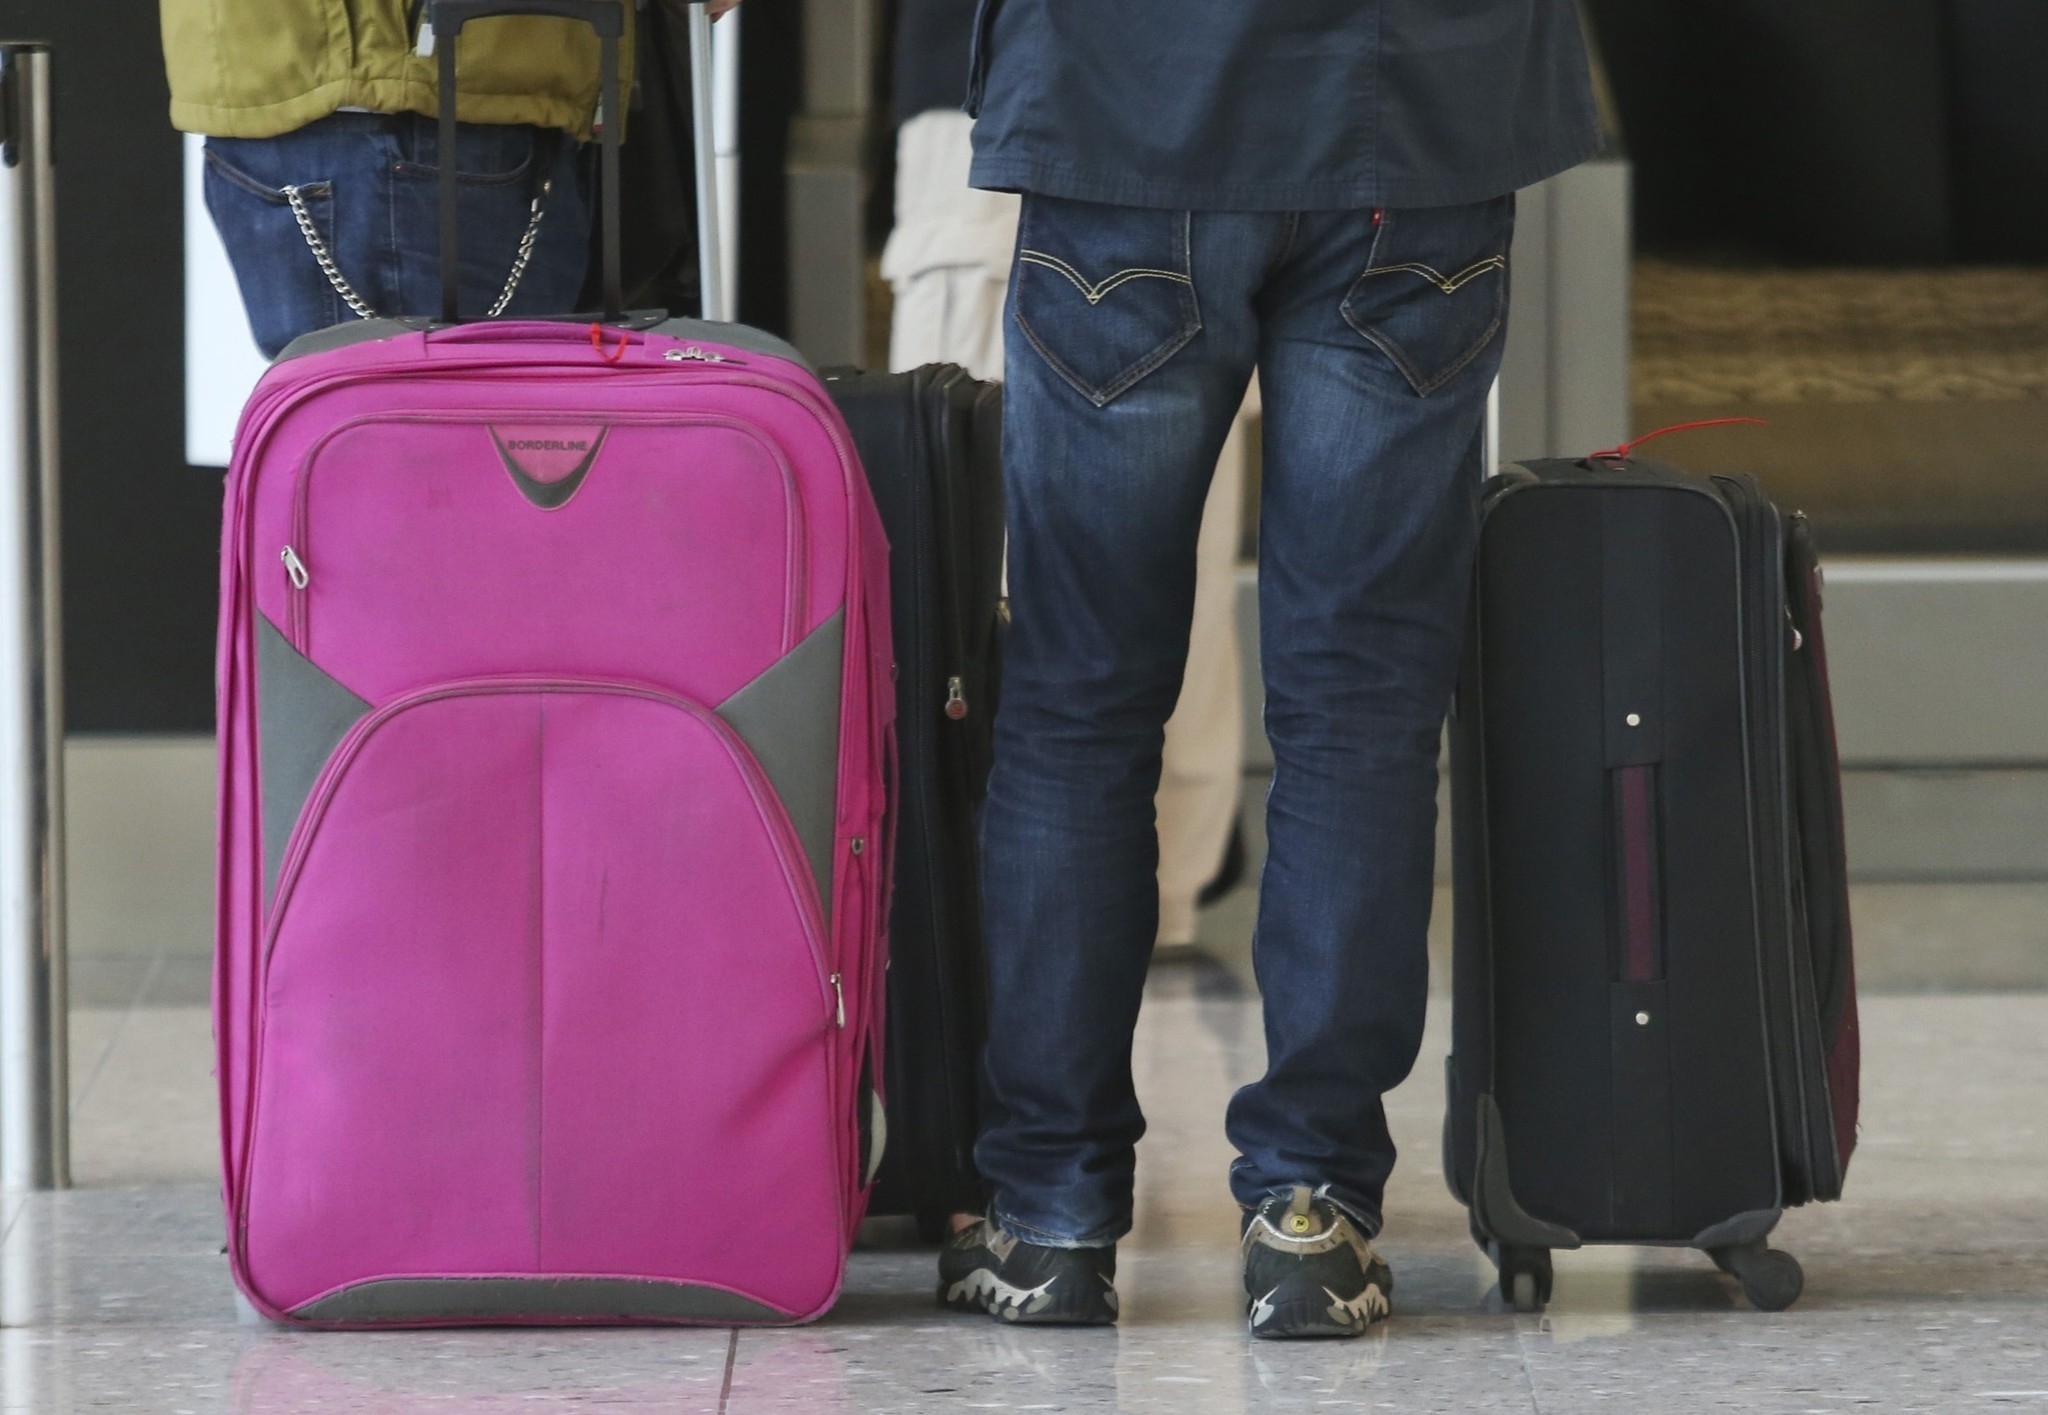 Carry on bag size varies by airline and can catch you How to pack a carry on suitcase video